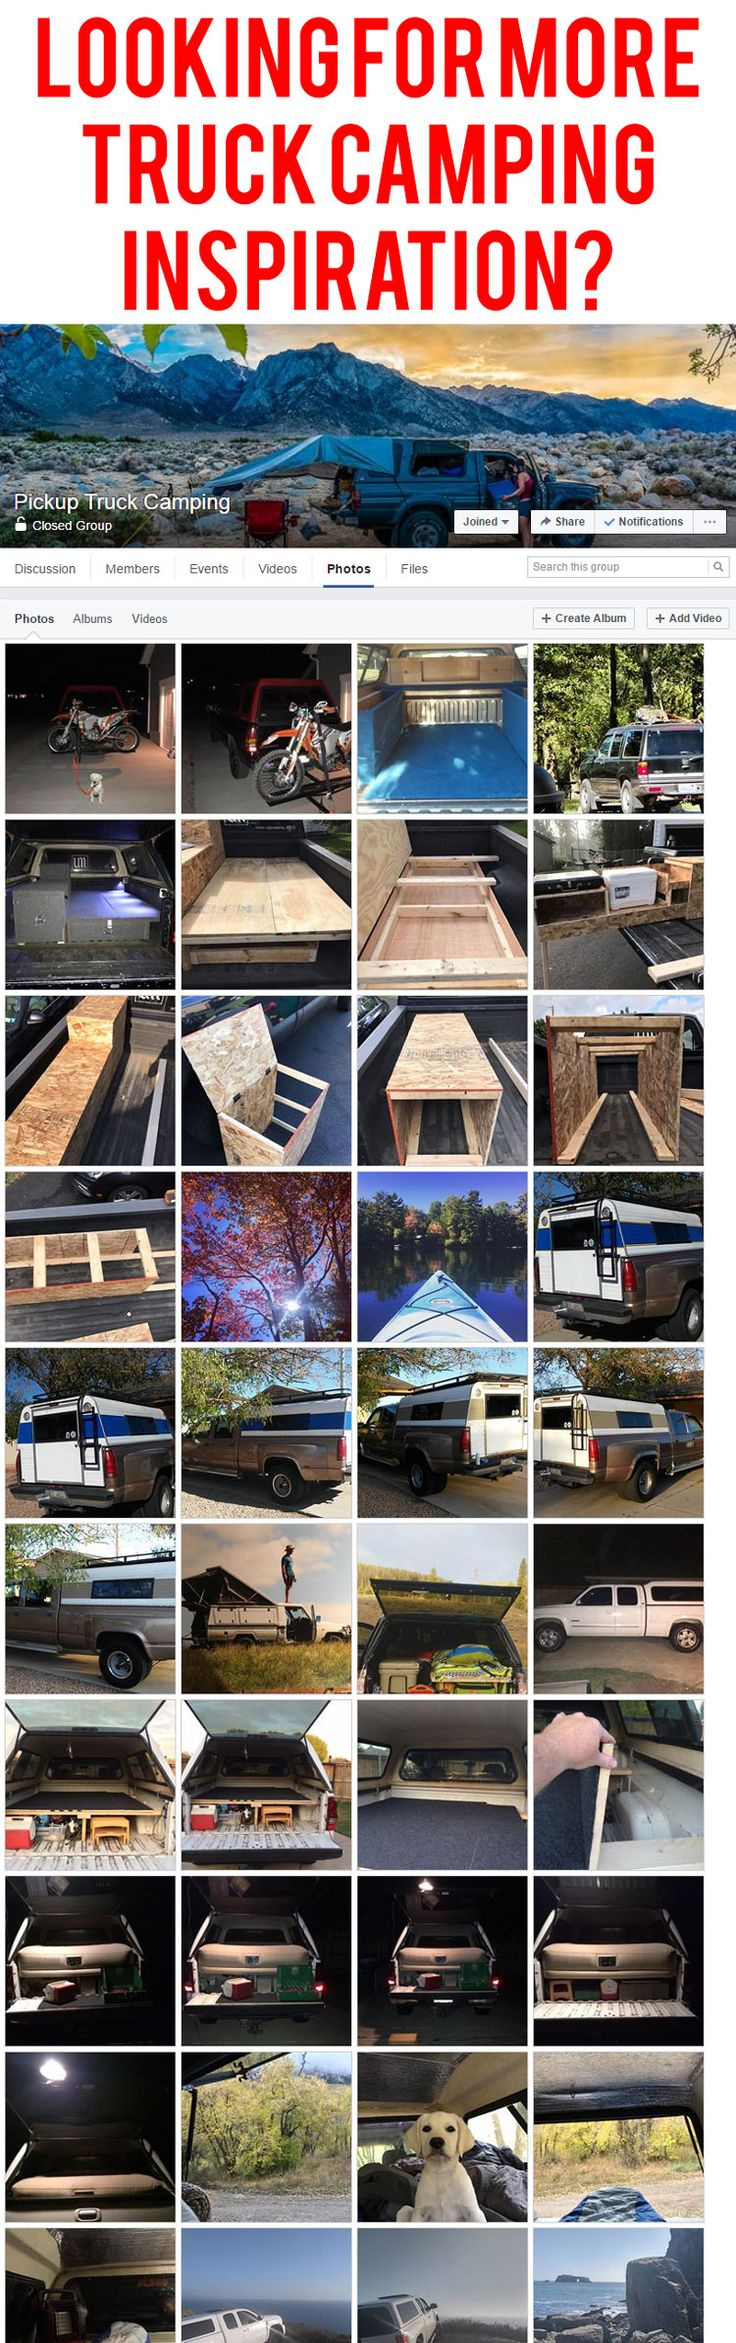 Looking for more truck camping inspiration? Click to join the largest and most active group on Facebook for truck canopy campers. Get your questions answered, share photos, and more... http://www.facebook.com/groups/truckcamping